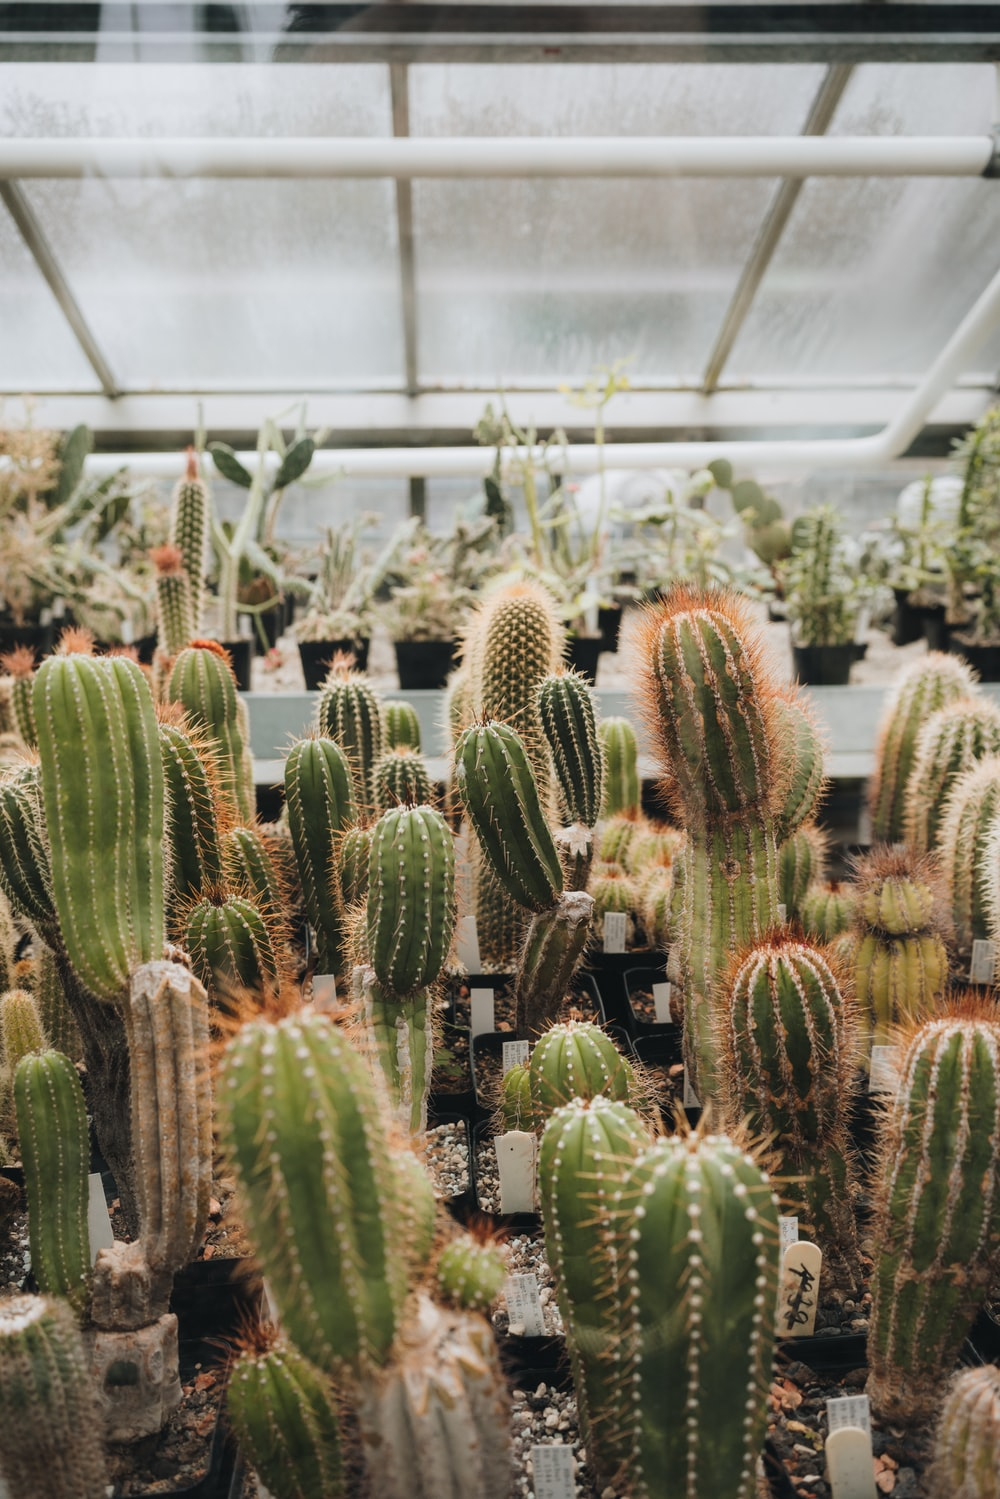 cactus plants inside greenhouse